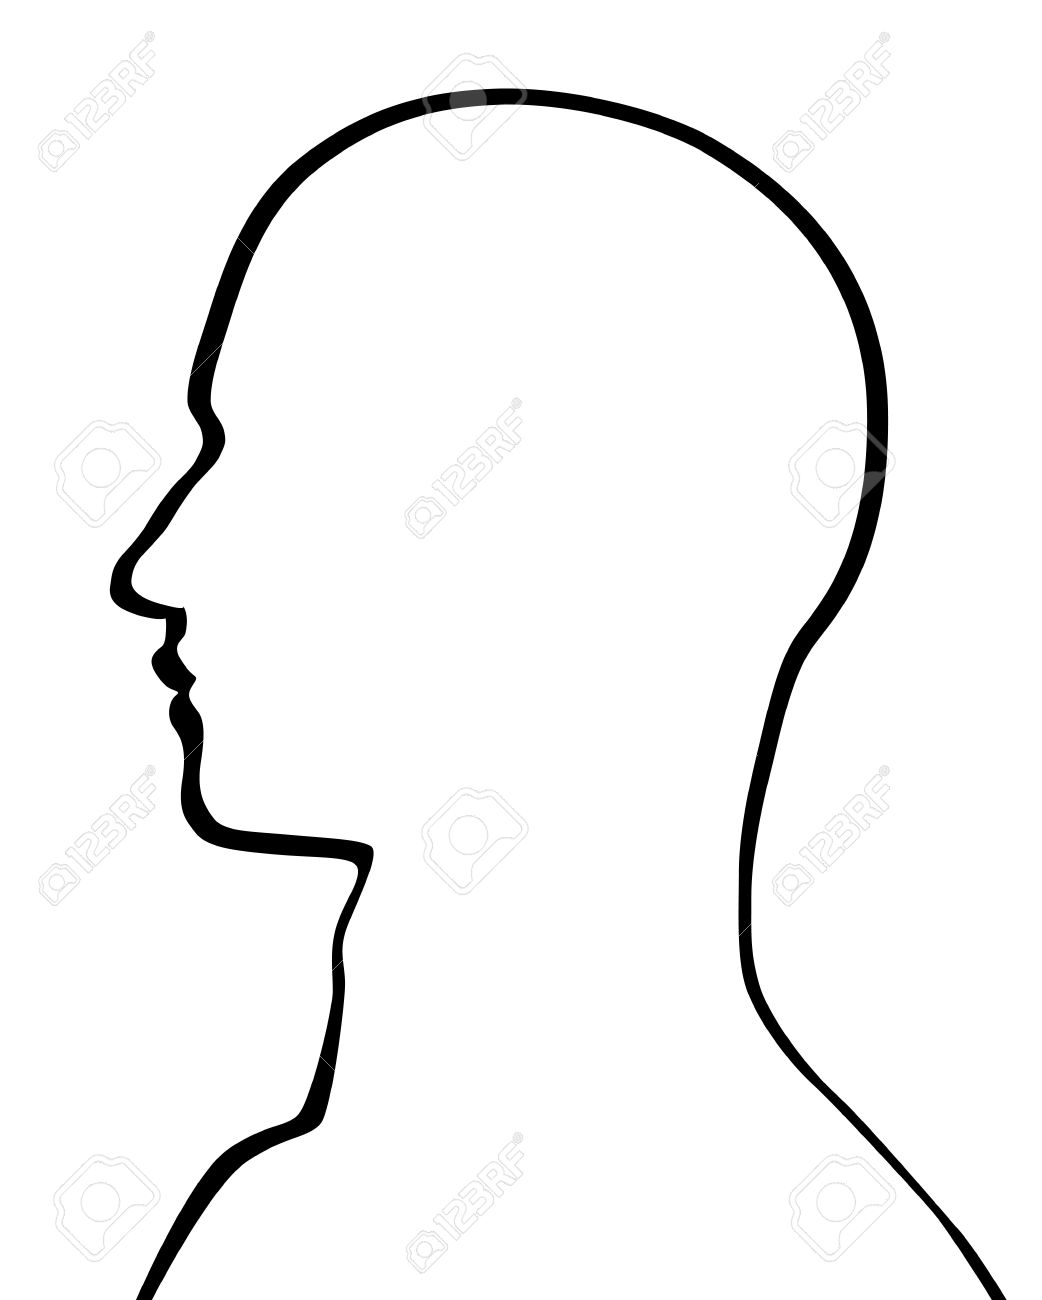 Head Outline Drawing : outline, drawing, Human, Royalty, Cliparts,, Vectors,, Stock, Illustration., Image, 17477123.